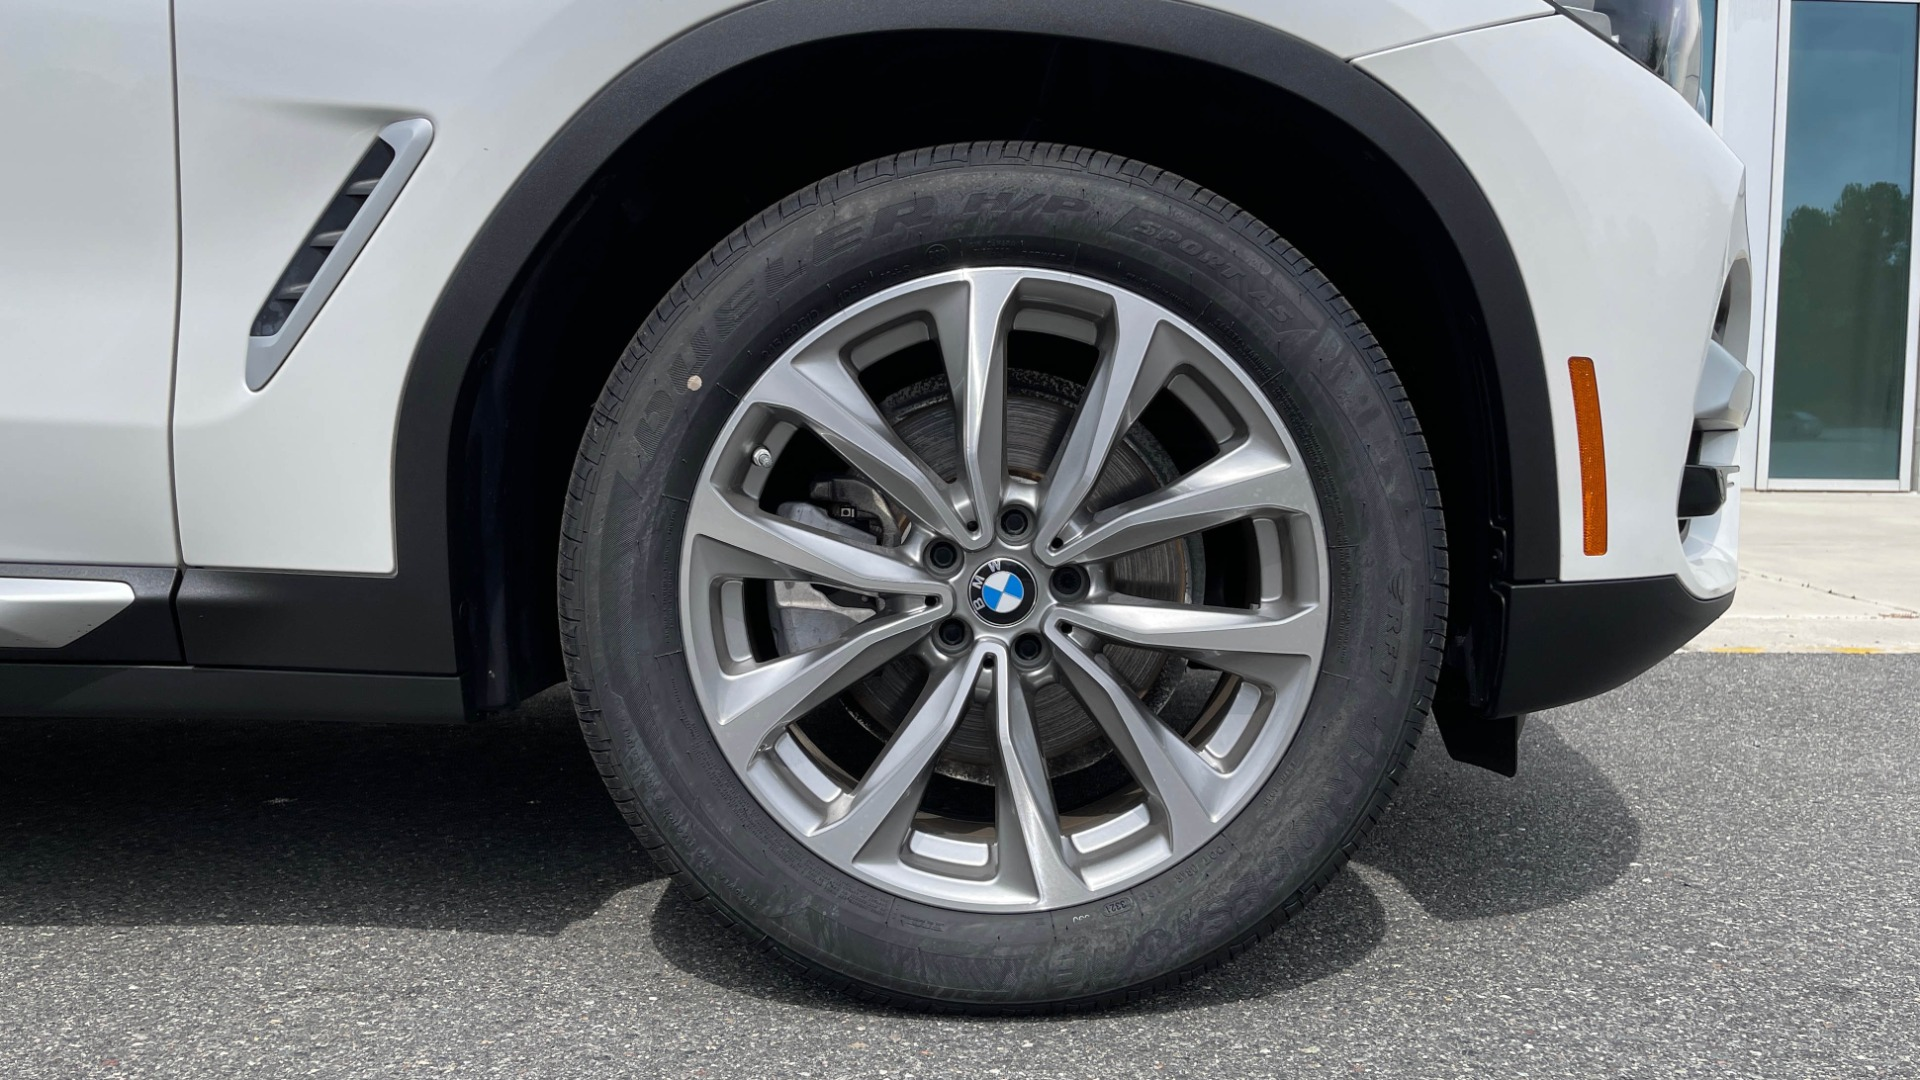 Used 2018 BMW X3 XDRIVE30I / NAV / PANO-ROOF / HTD STS / PARK DIST CNTRL / REARVIEW for sale $38,995 at Formula Imports in Charlotte NC 28227 67